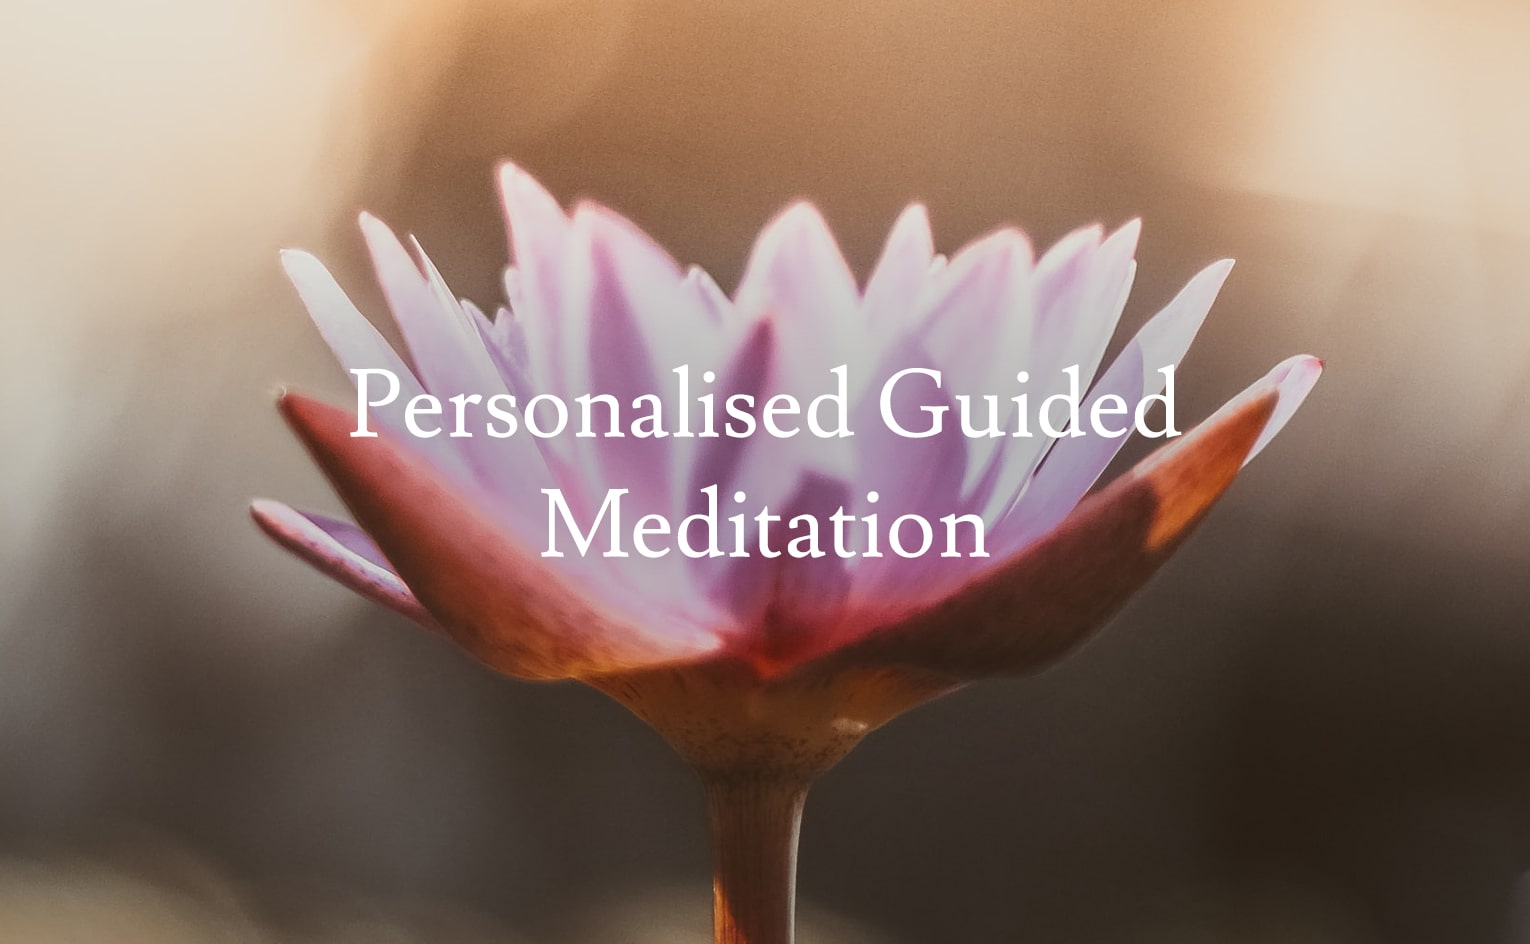 Personalised Guided Meditation